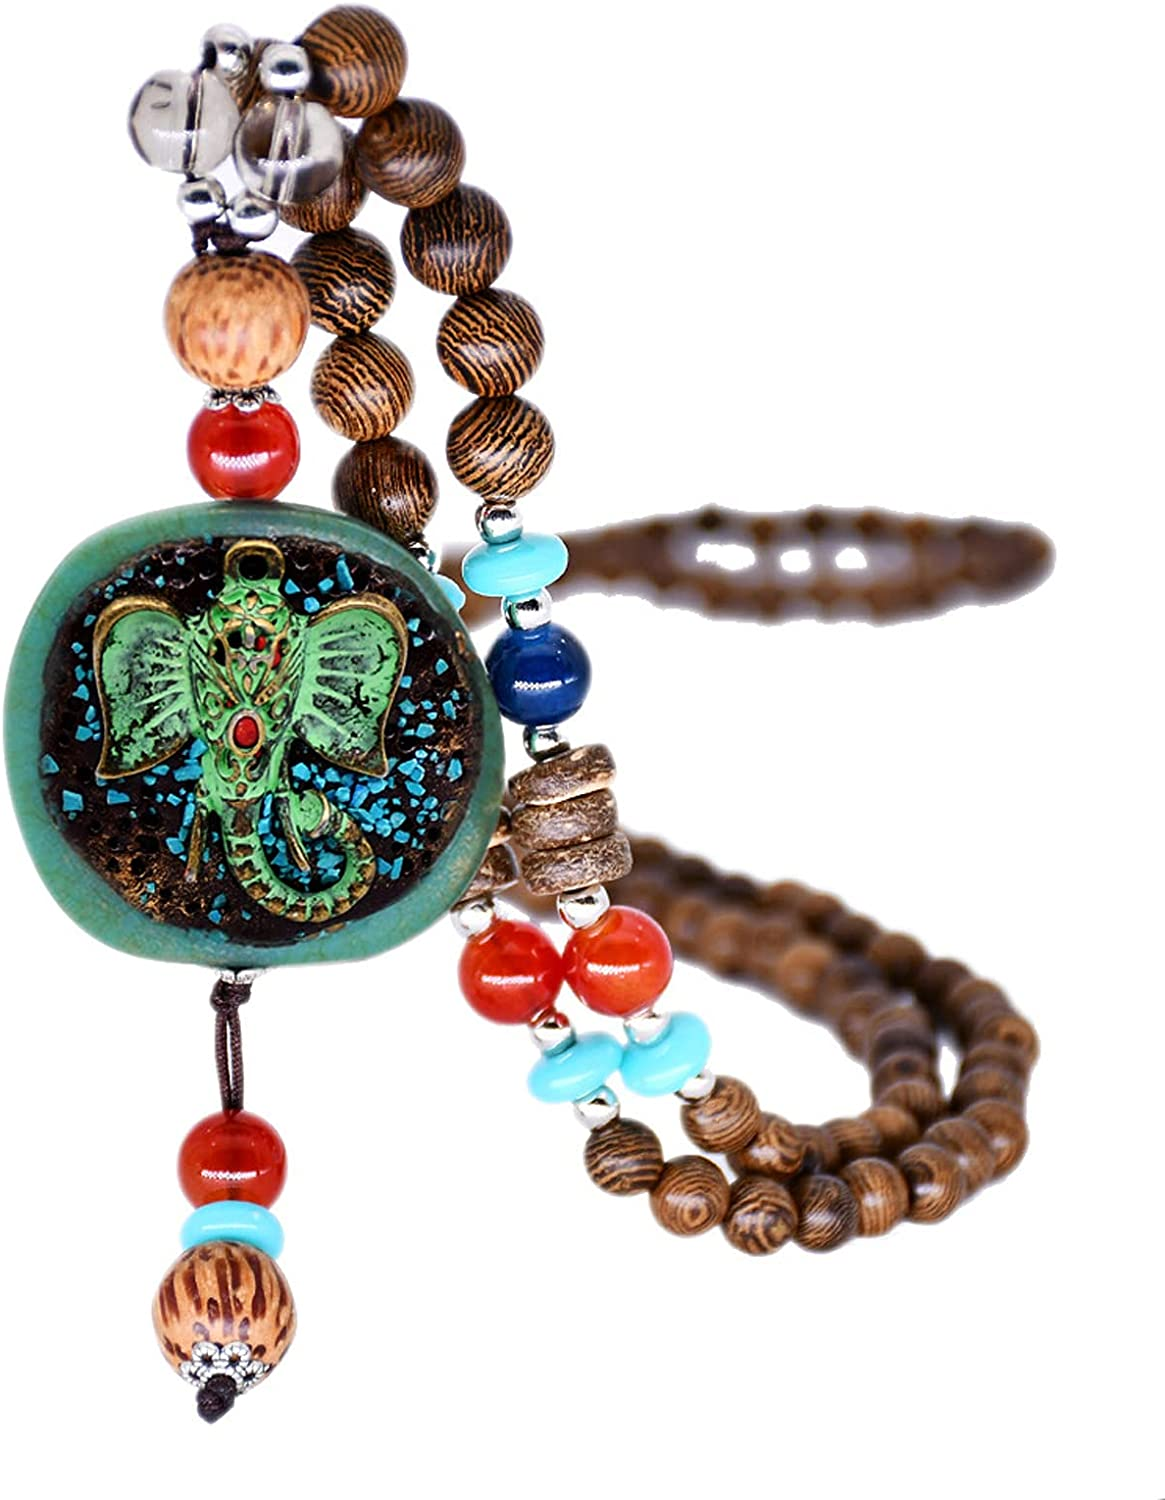 COLORFUL BLING Handmade Vintage Turquoise Wooden Beads Necklace Tibetan Carved Long Tassel Necklace for Women Girls Wood Jewelry